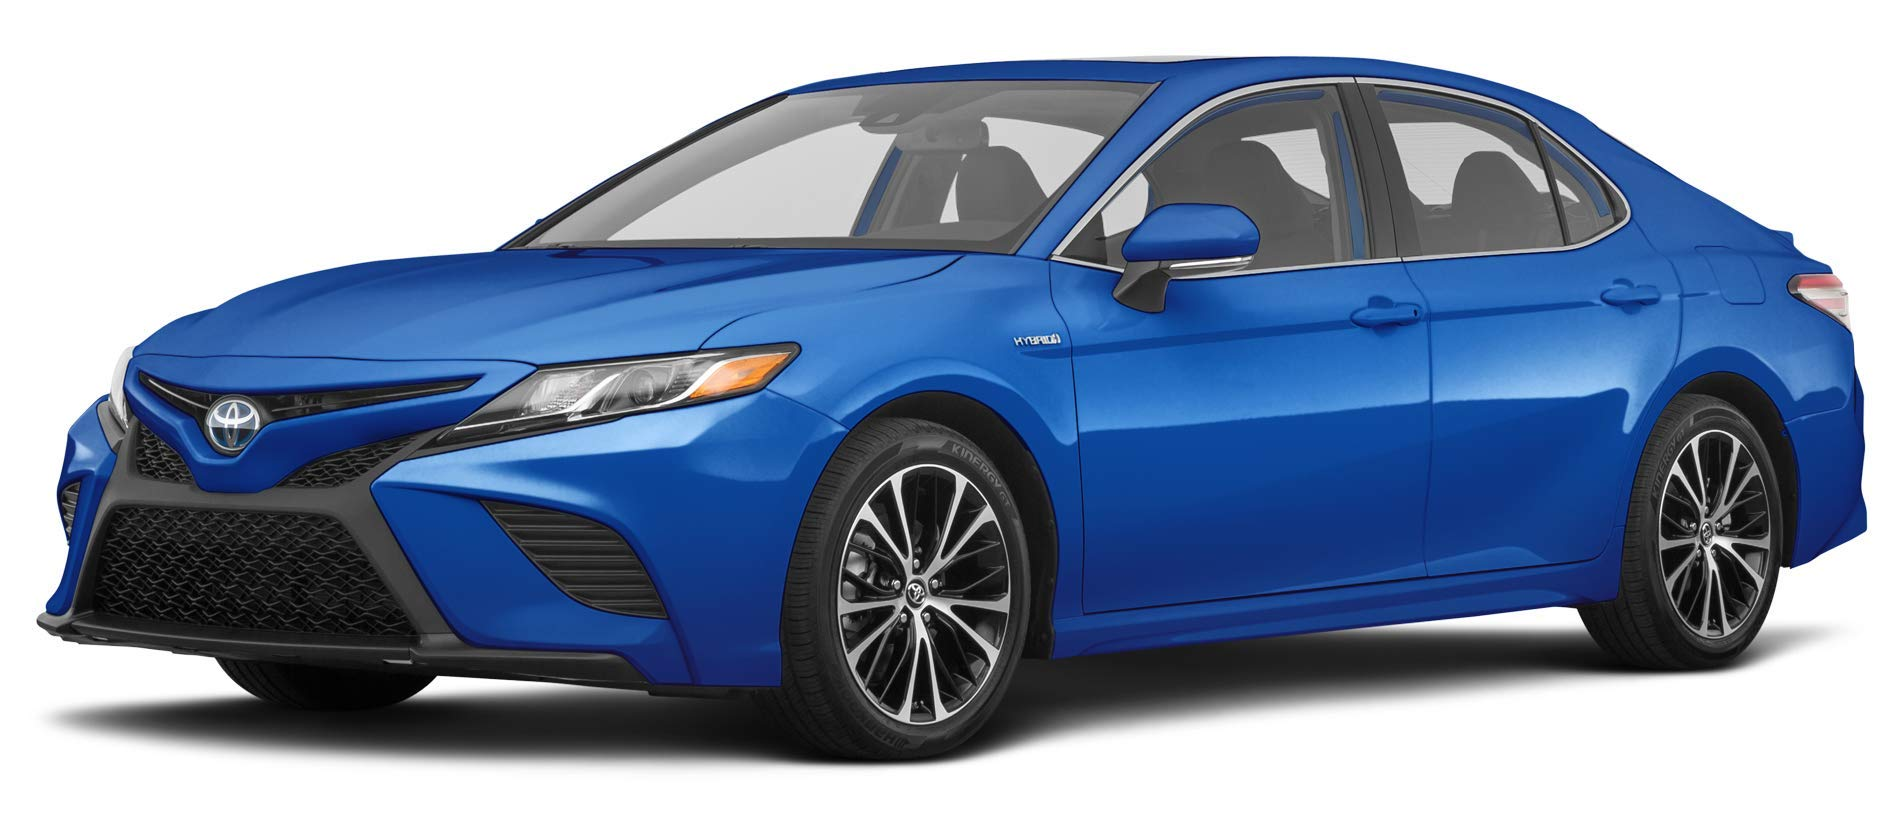 Amazon Com 2019 Toyota Camry Reviews Images And Specs Vehicles